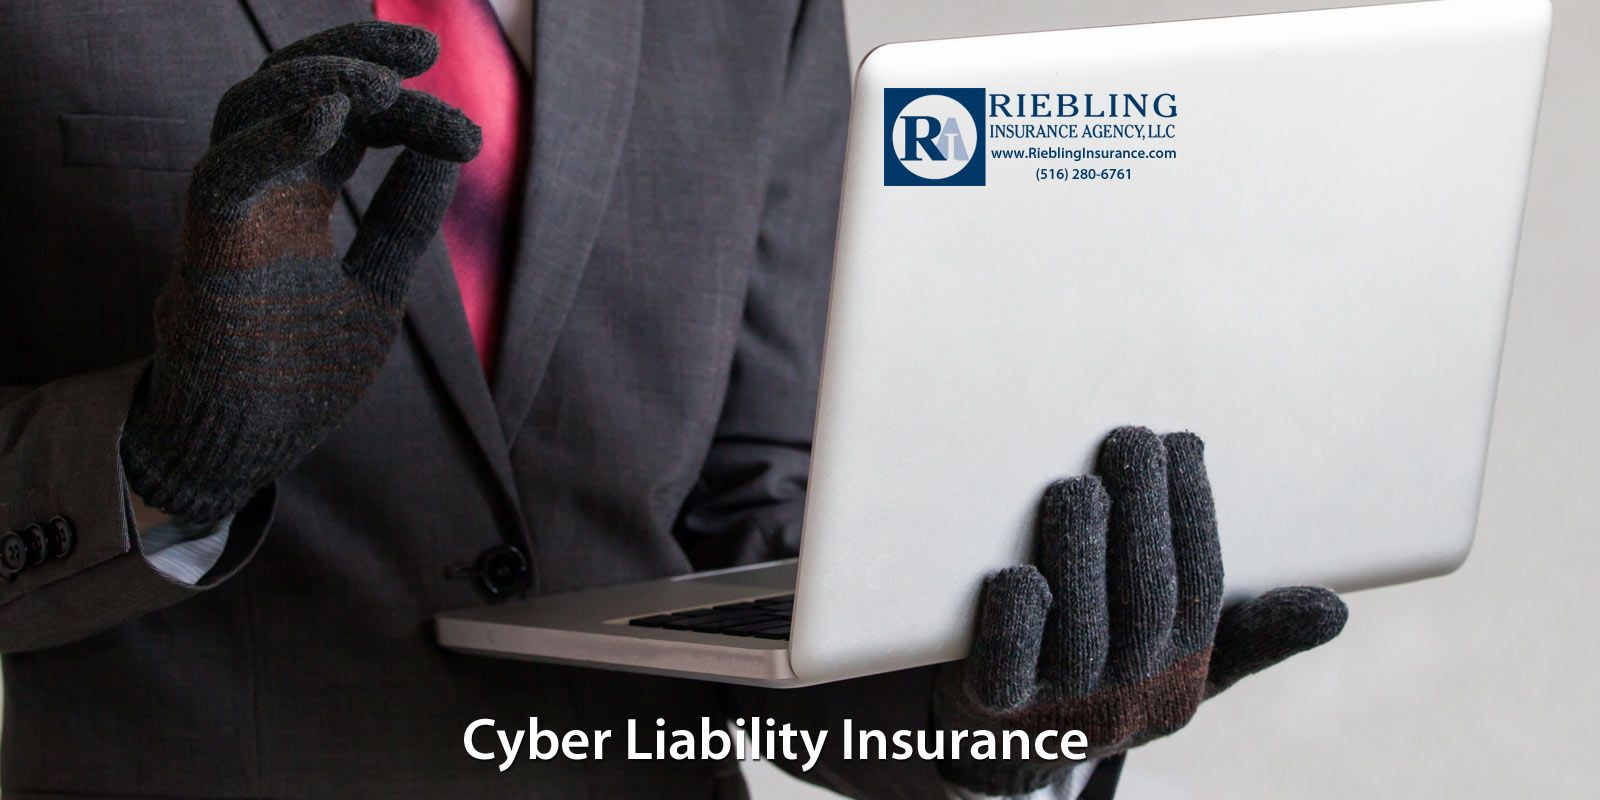 Cyber risk insurance can help businesses diminish risk